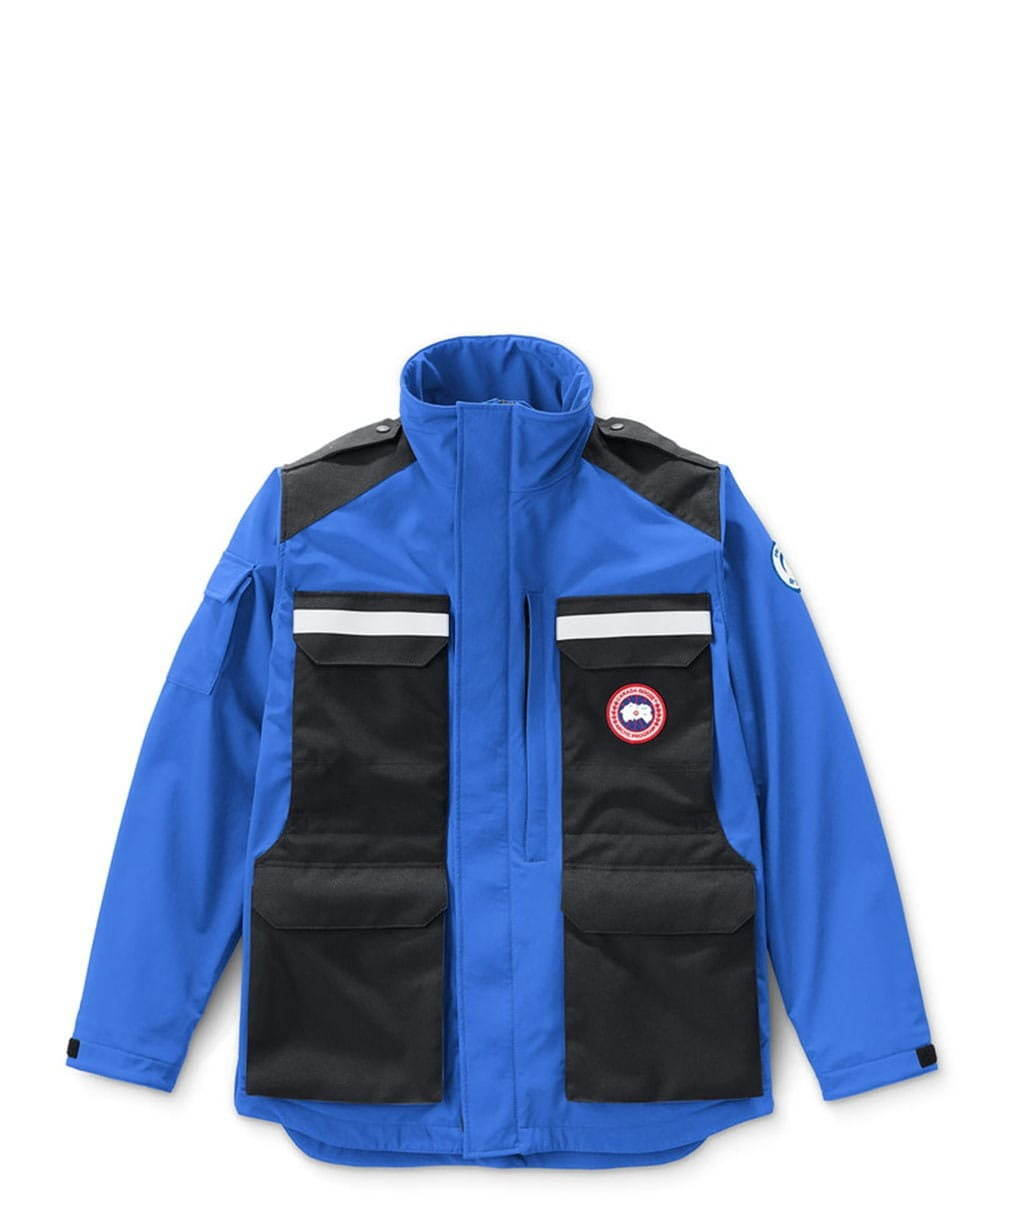 PHOTOJOURNALIST JACKET PBI 116,600円(税込)